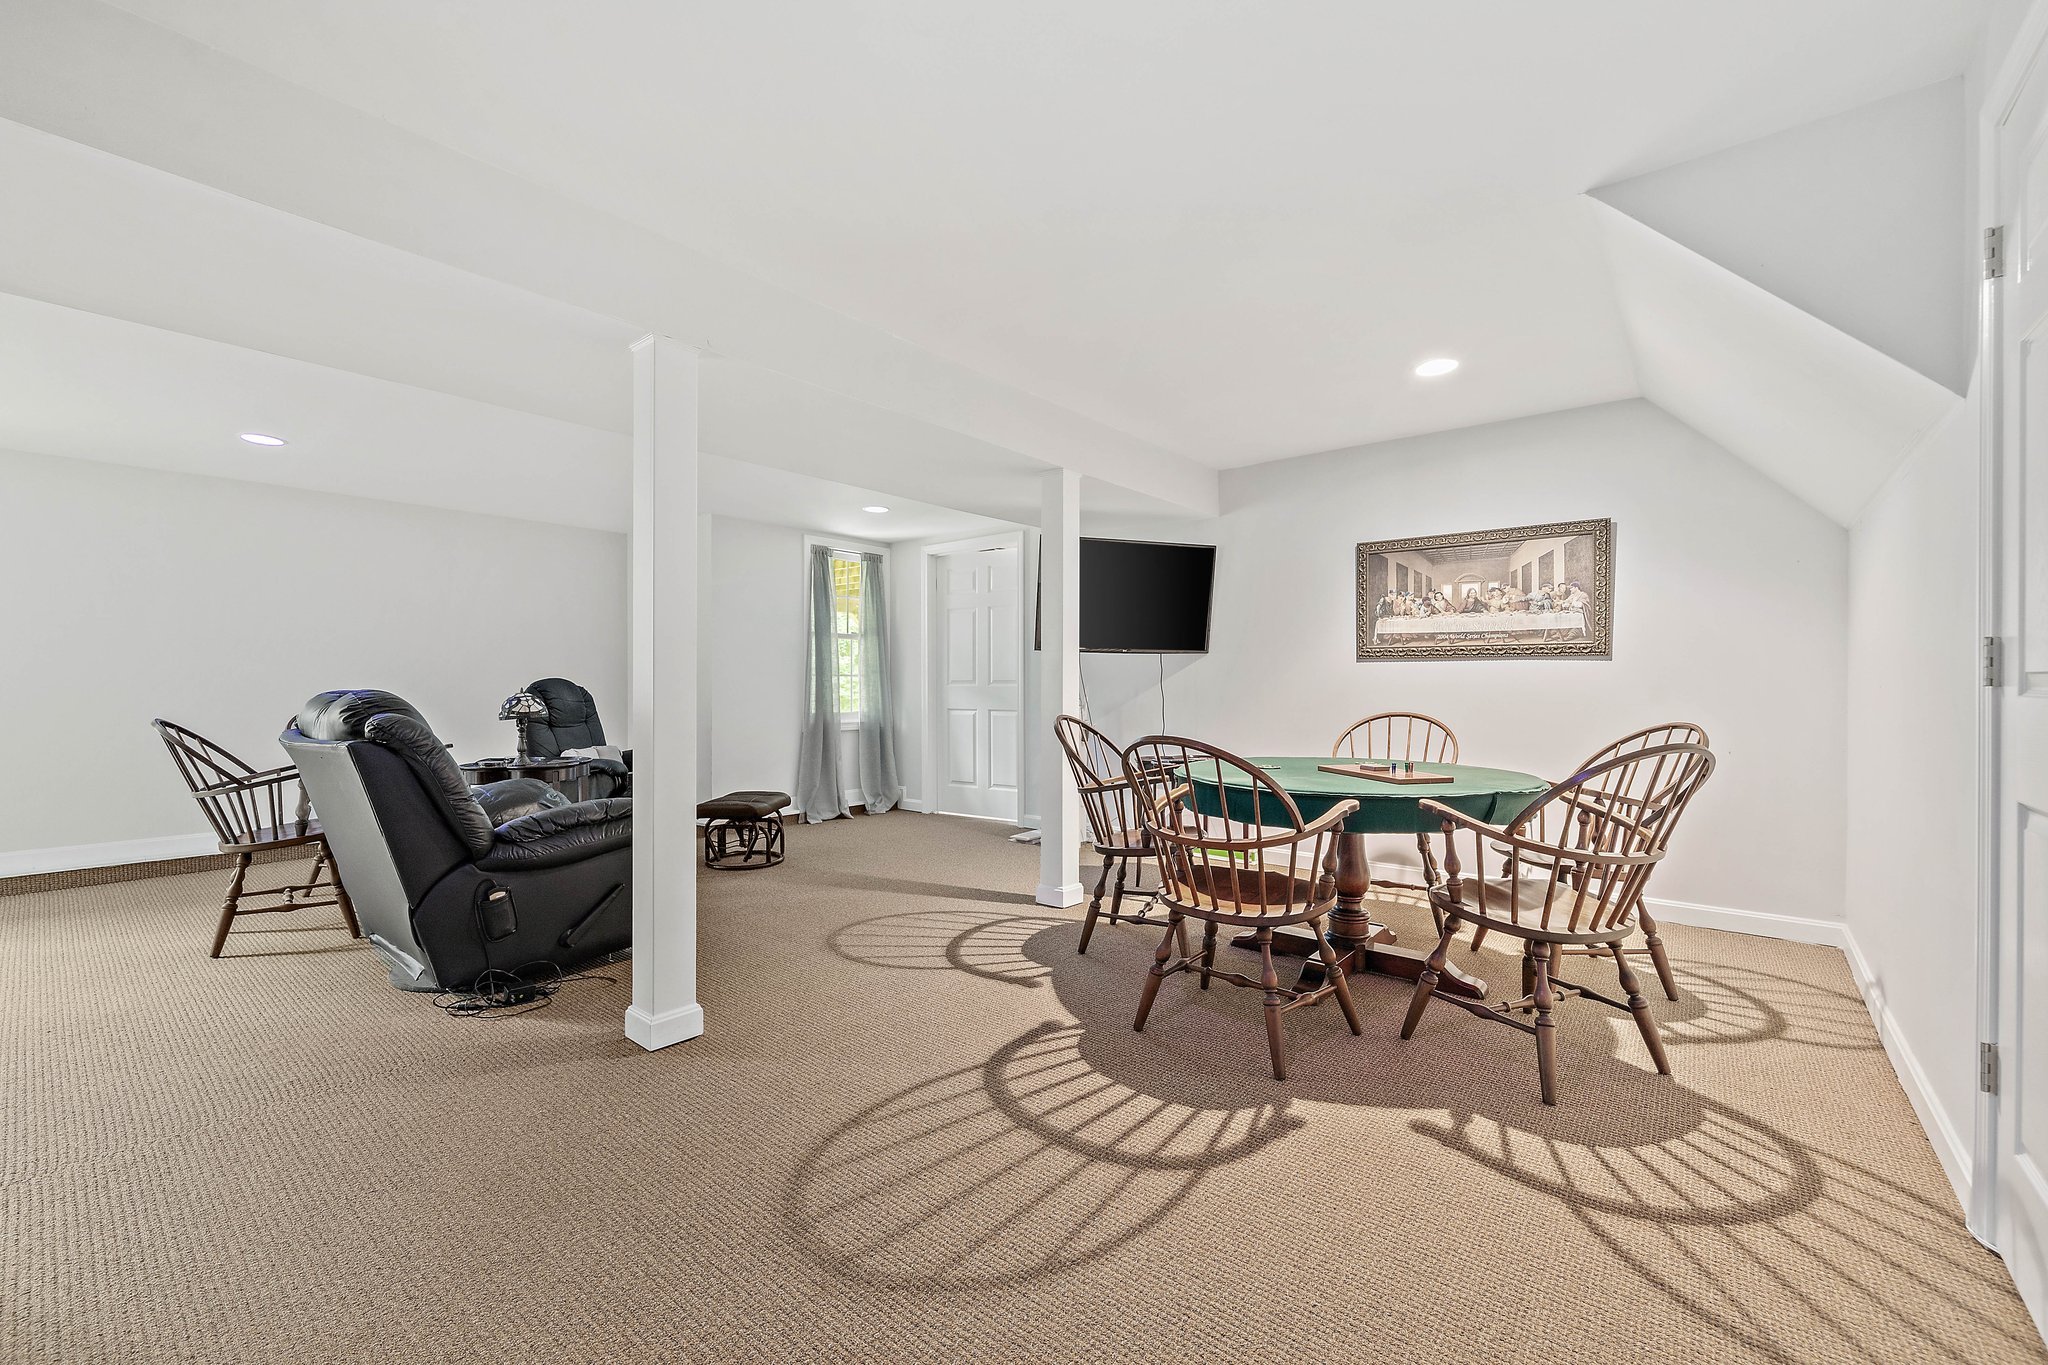 47 Townsend Woods Dr, Hanover, MA 02339, USA Photo 38